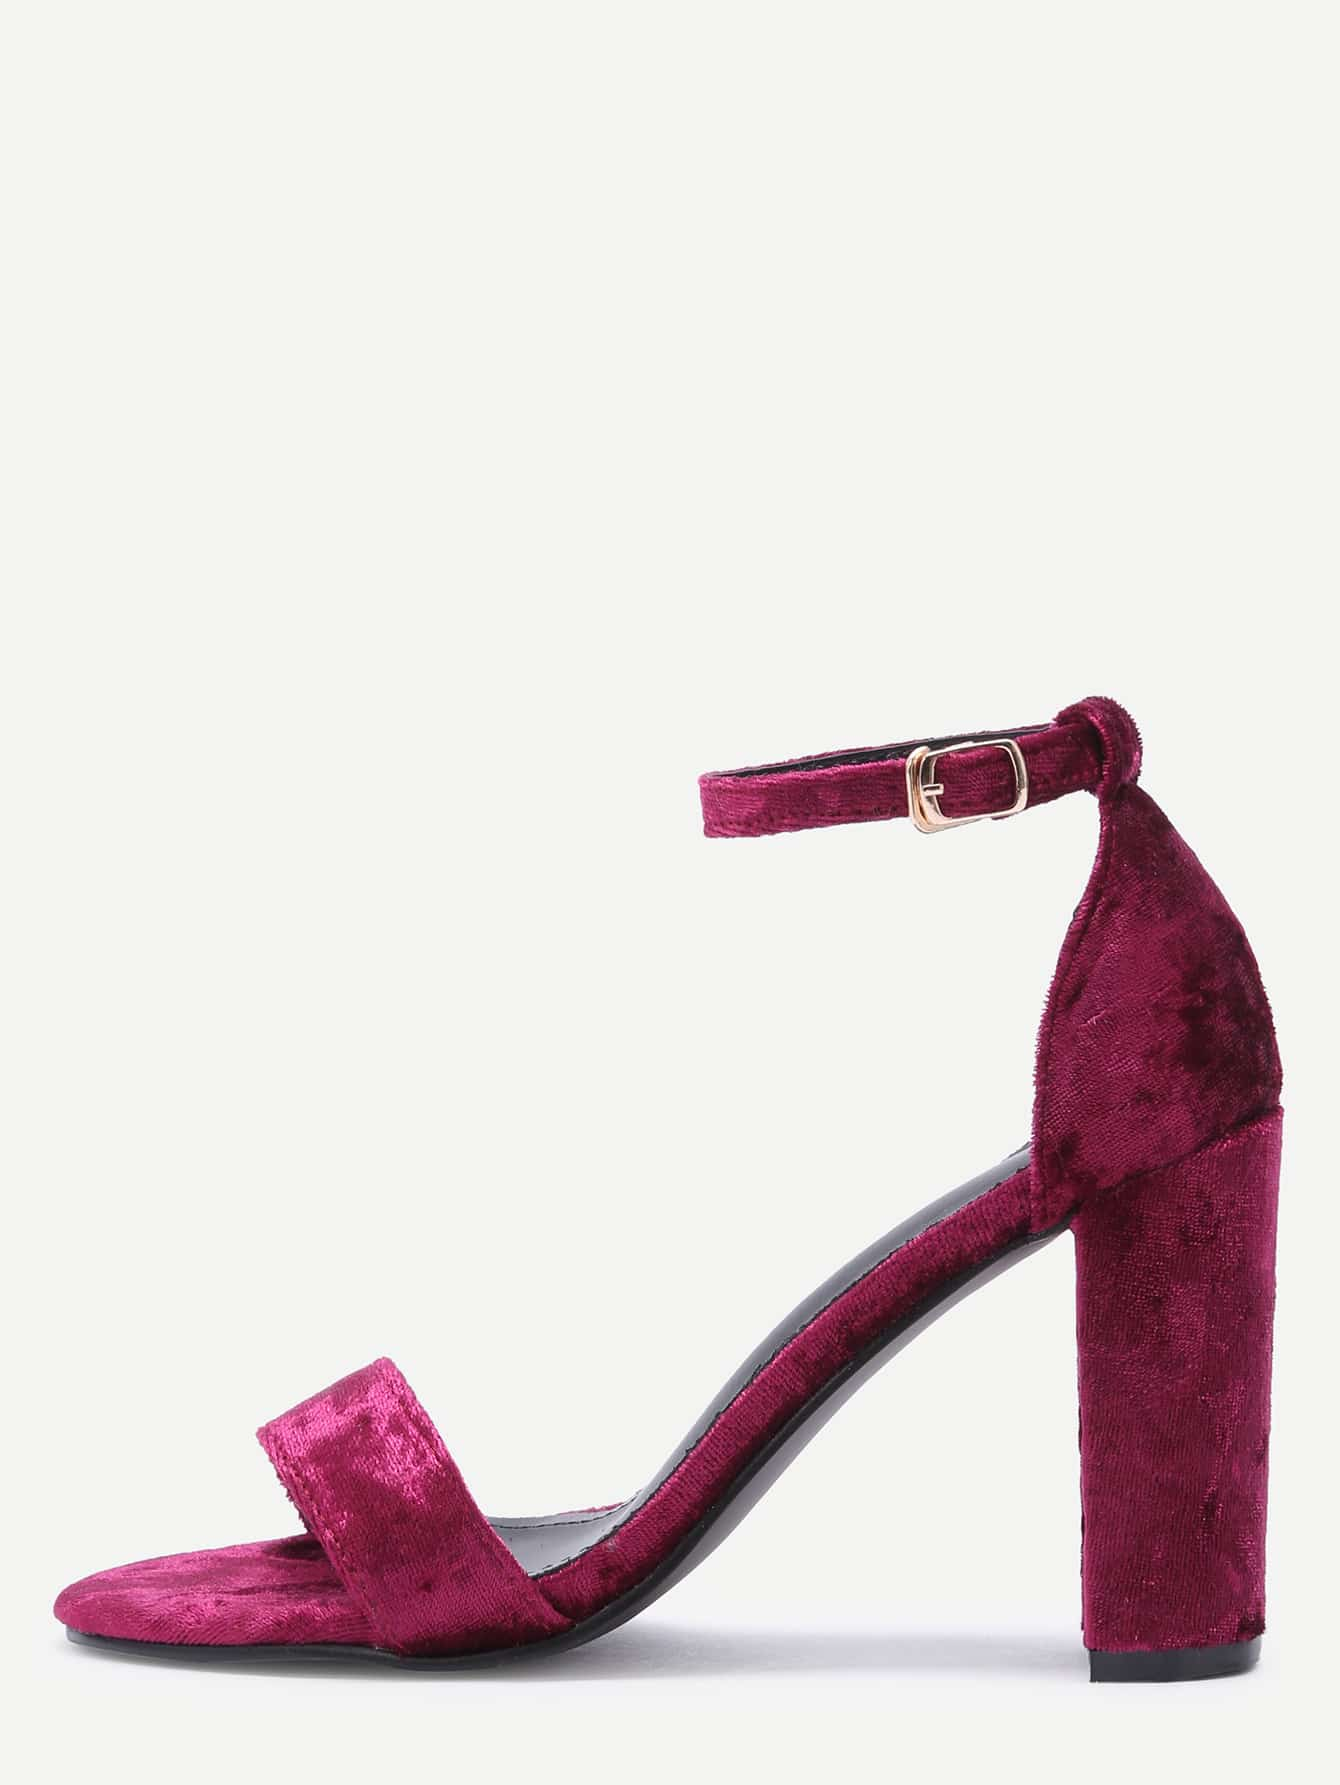 Buy Burgundy Velvet Peep Toe High Heel Mary Jane Shoes